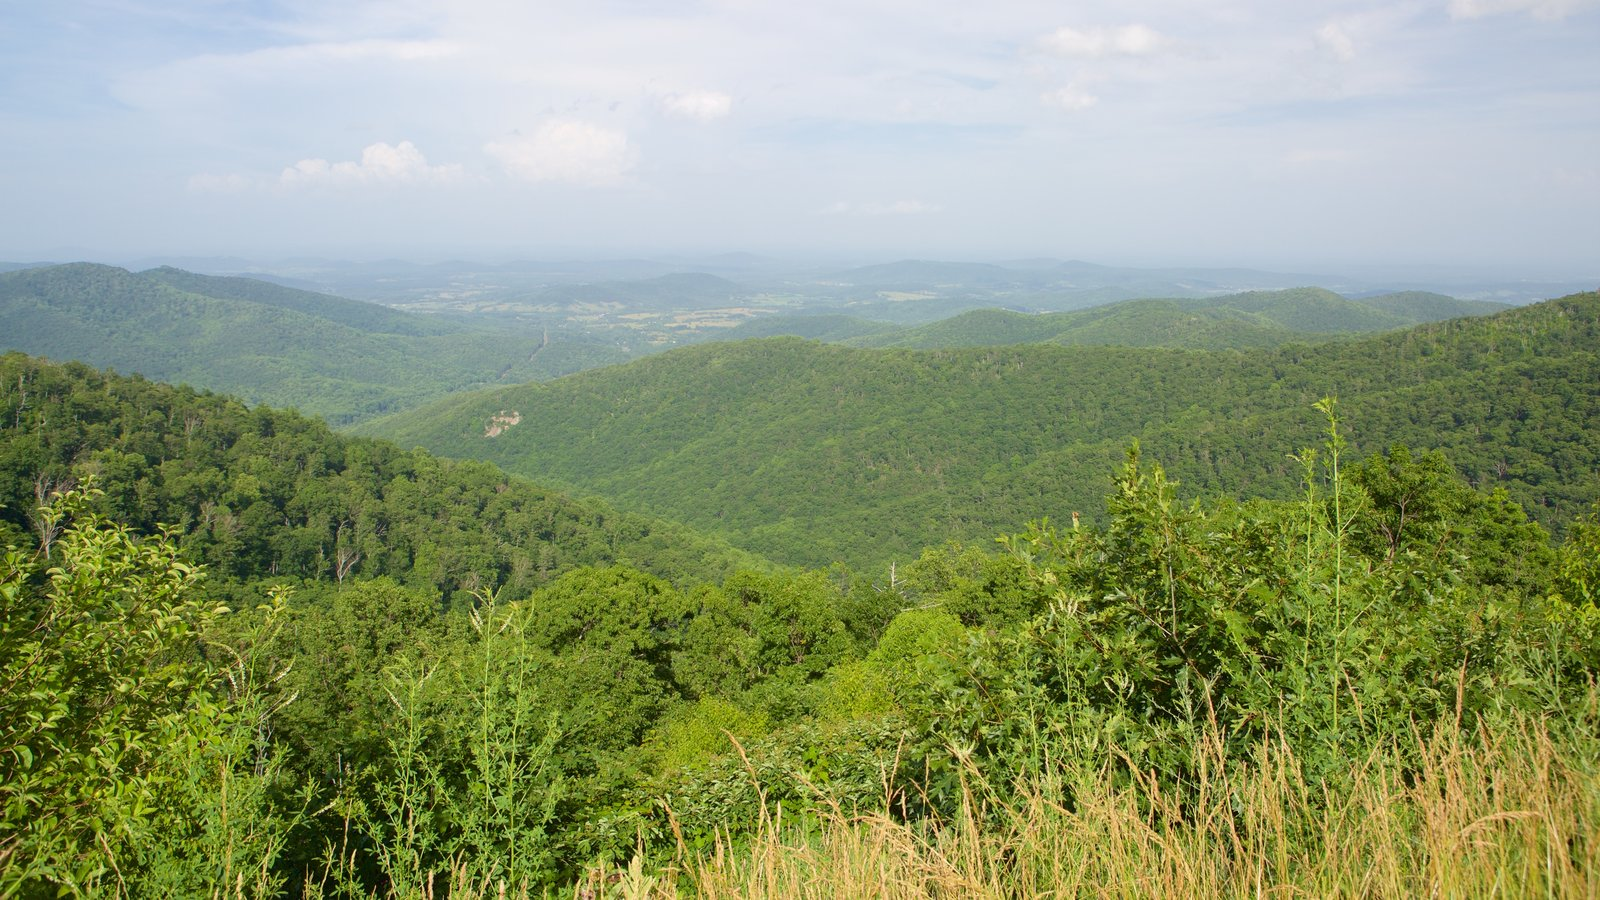 Shenandoah National Park featuring landscape views, tranquil scenes and mountains